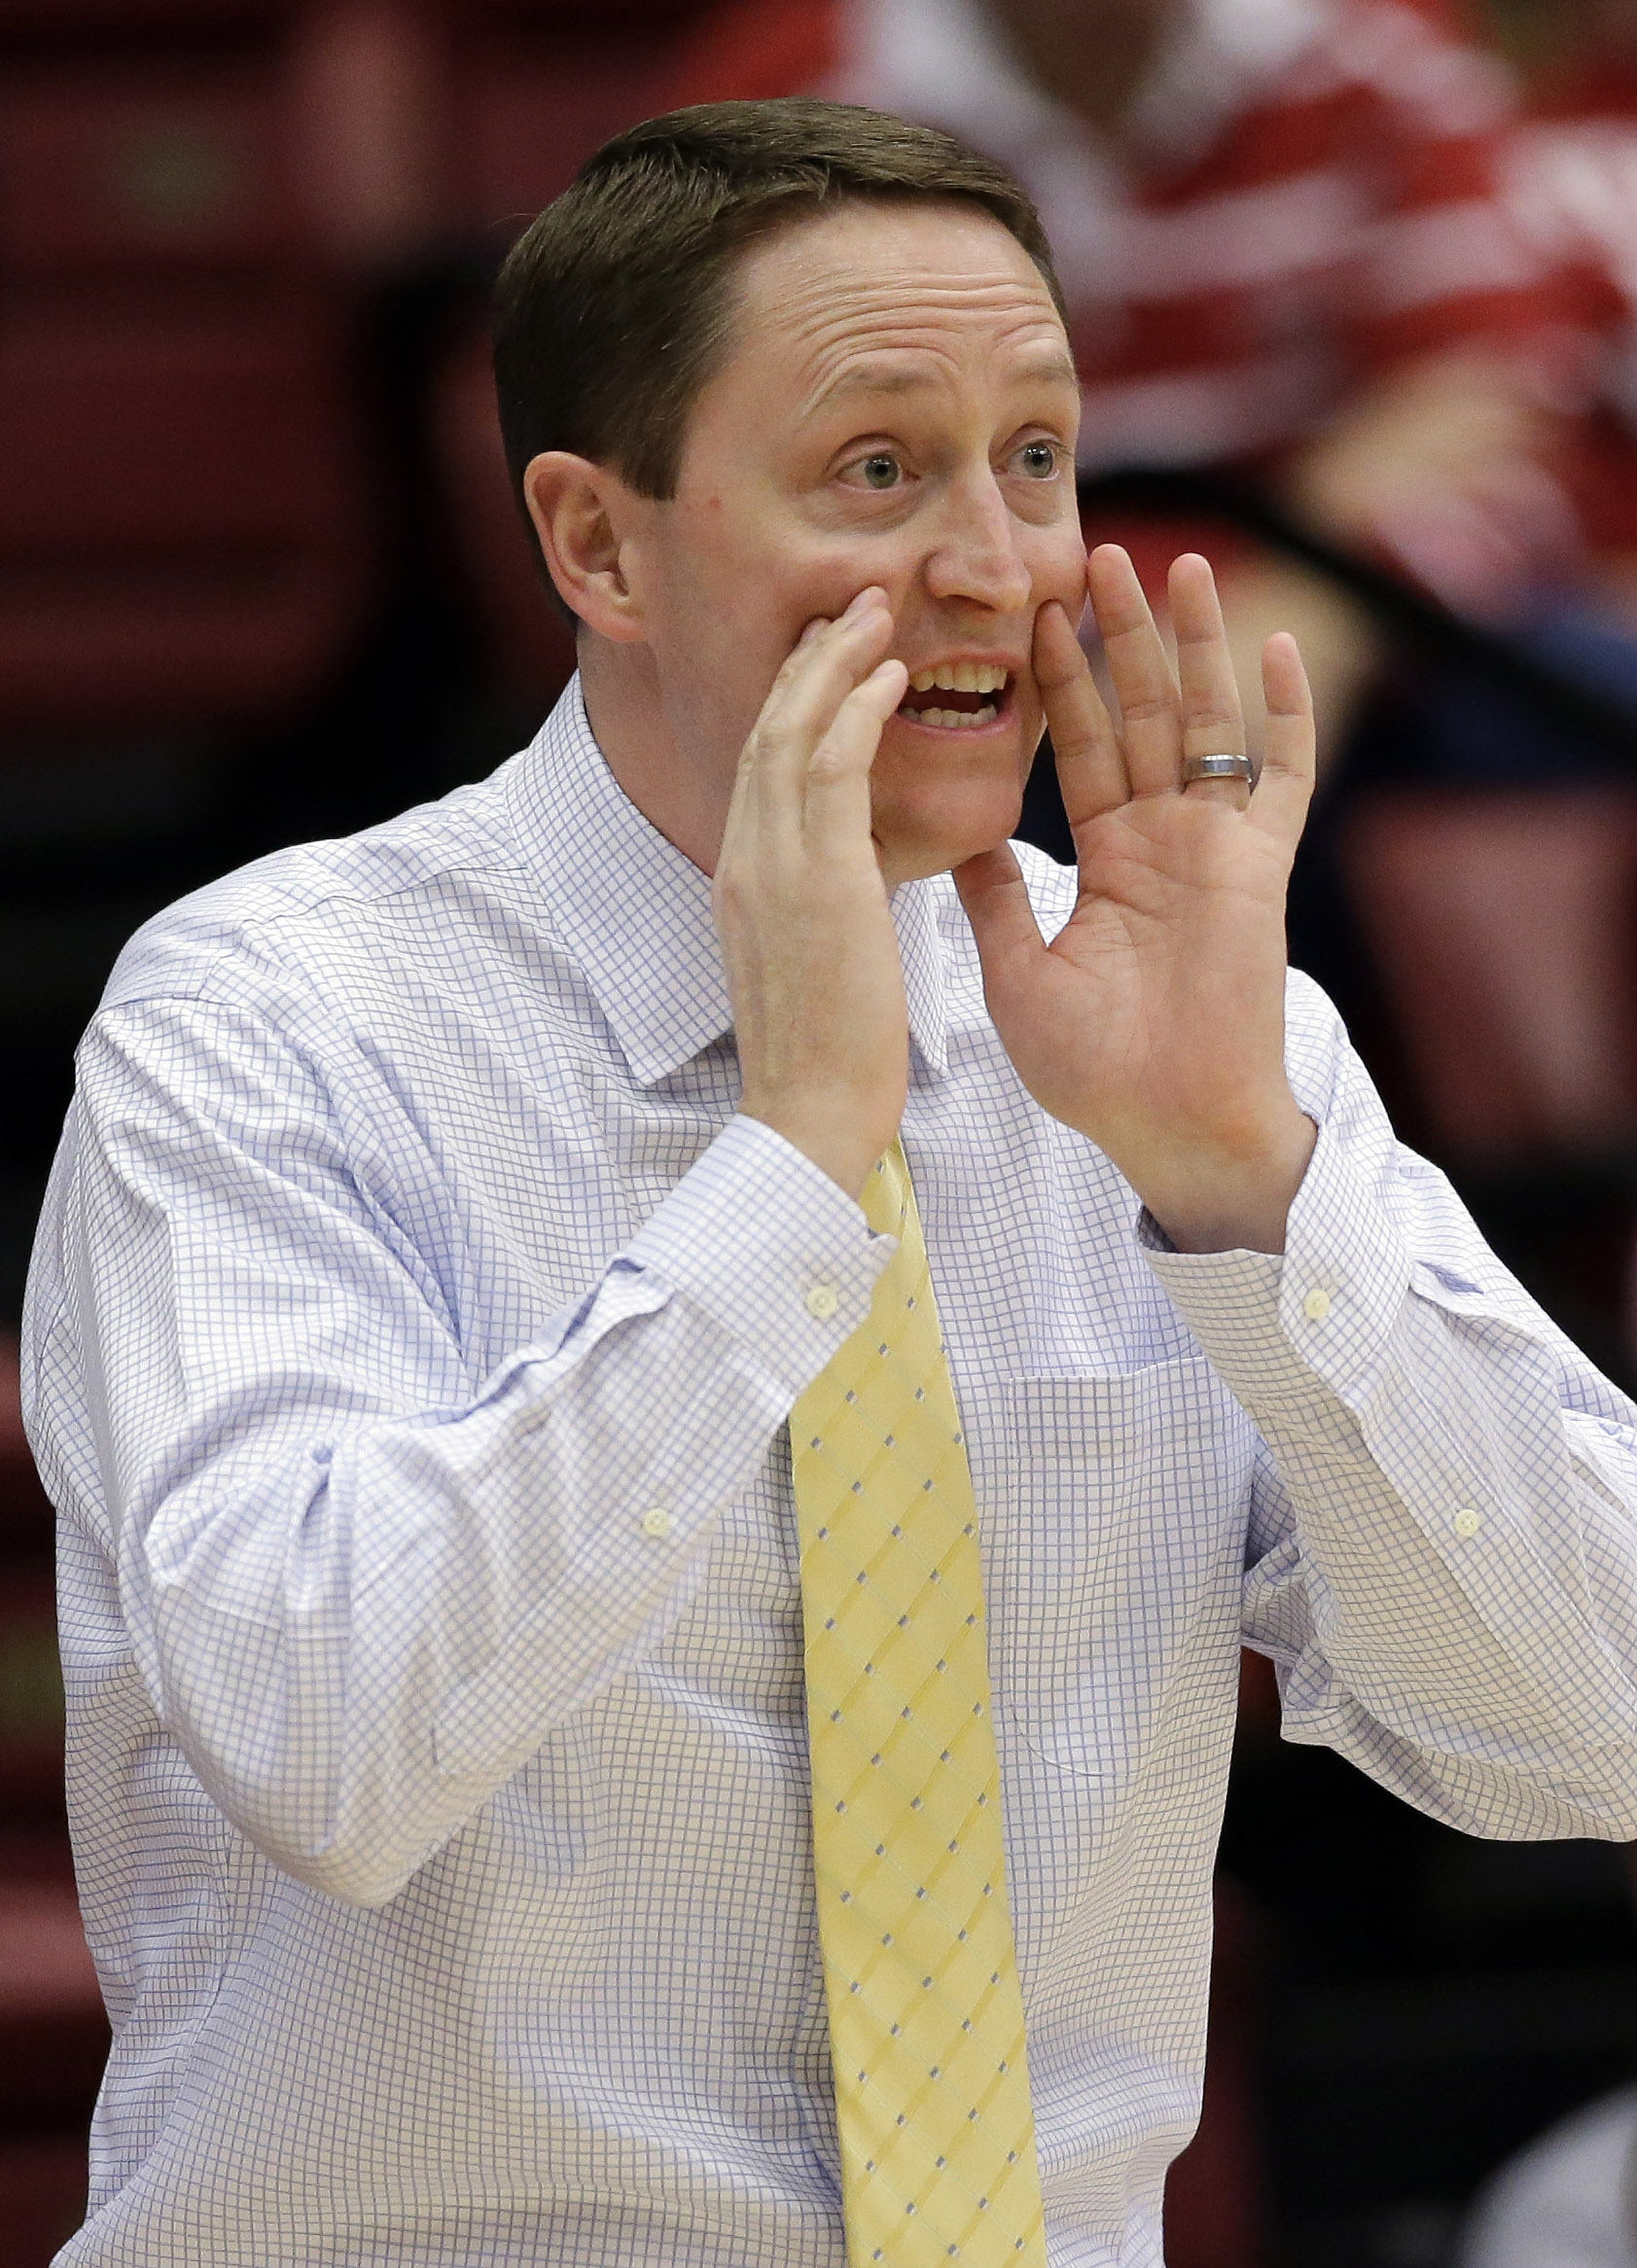 South Dakota State head coach Aaron Johnston instructs his team against Miami in the first half of a first-round women's college basketball game in the NCAA Tournament Saturday, March 19, 2016, in Stanford, Calif.  (AP Photo/Marcio Jose Sanchez)